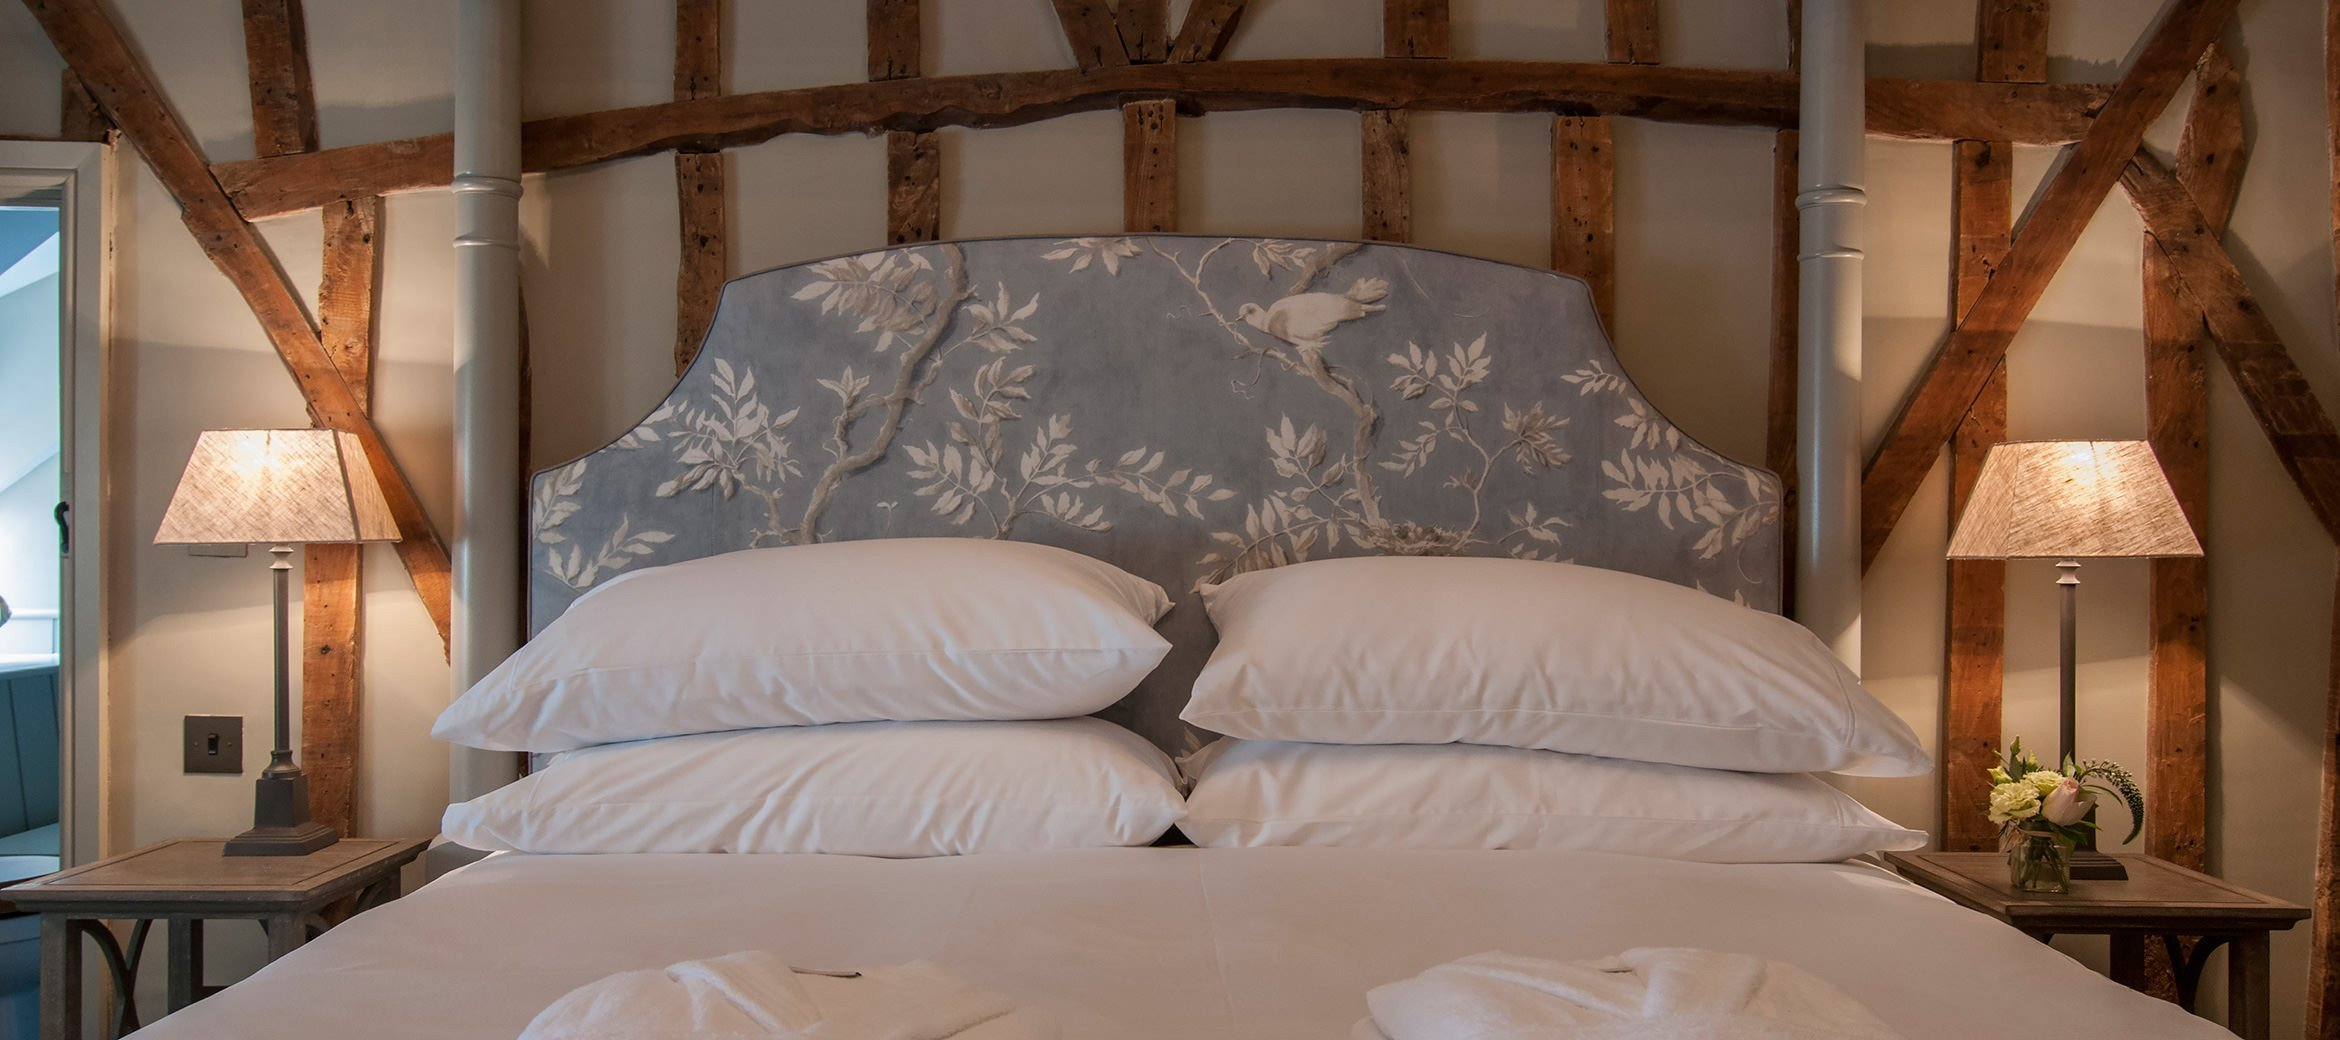 dovecote-luxury-cotswold-cottage-master-ensuite-bedroom